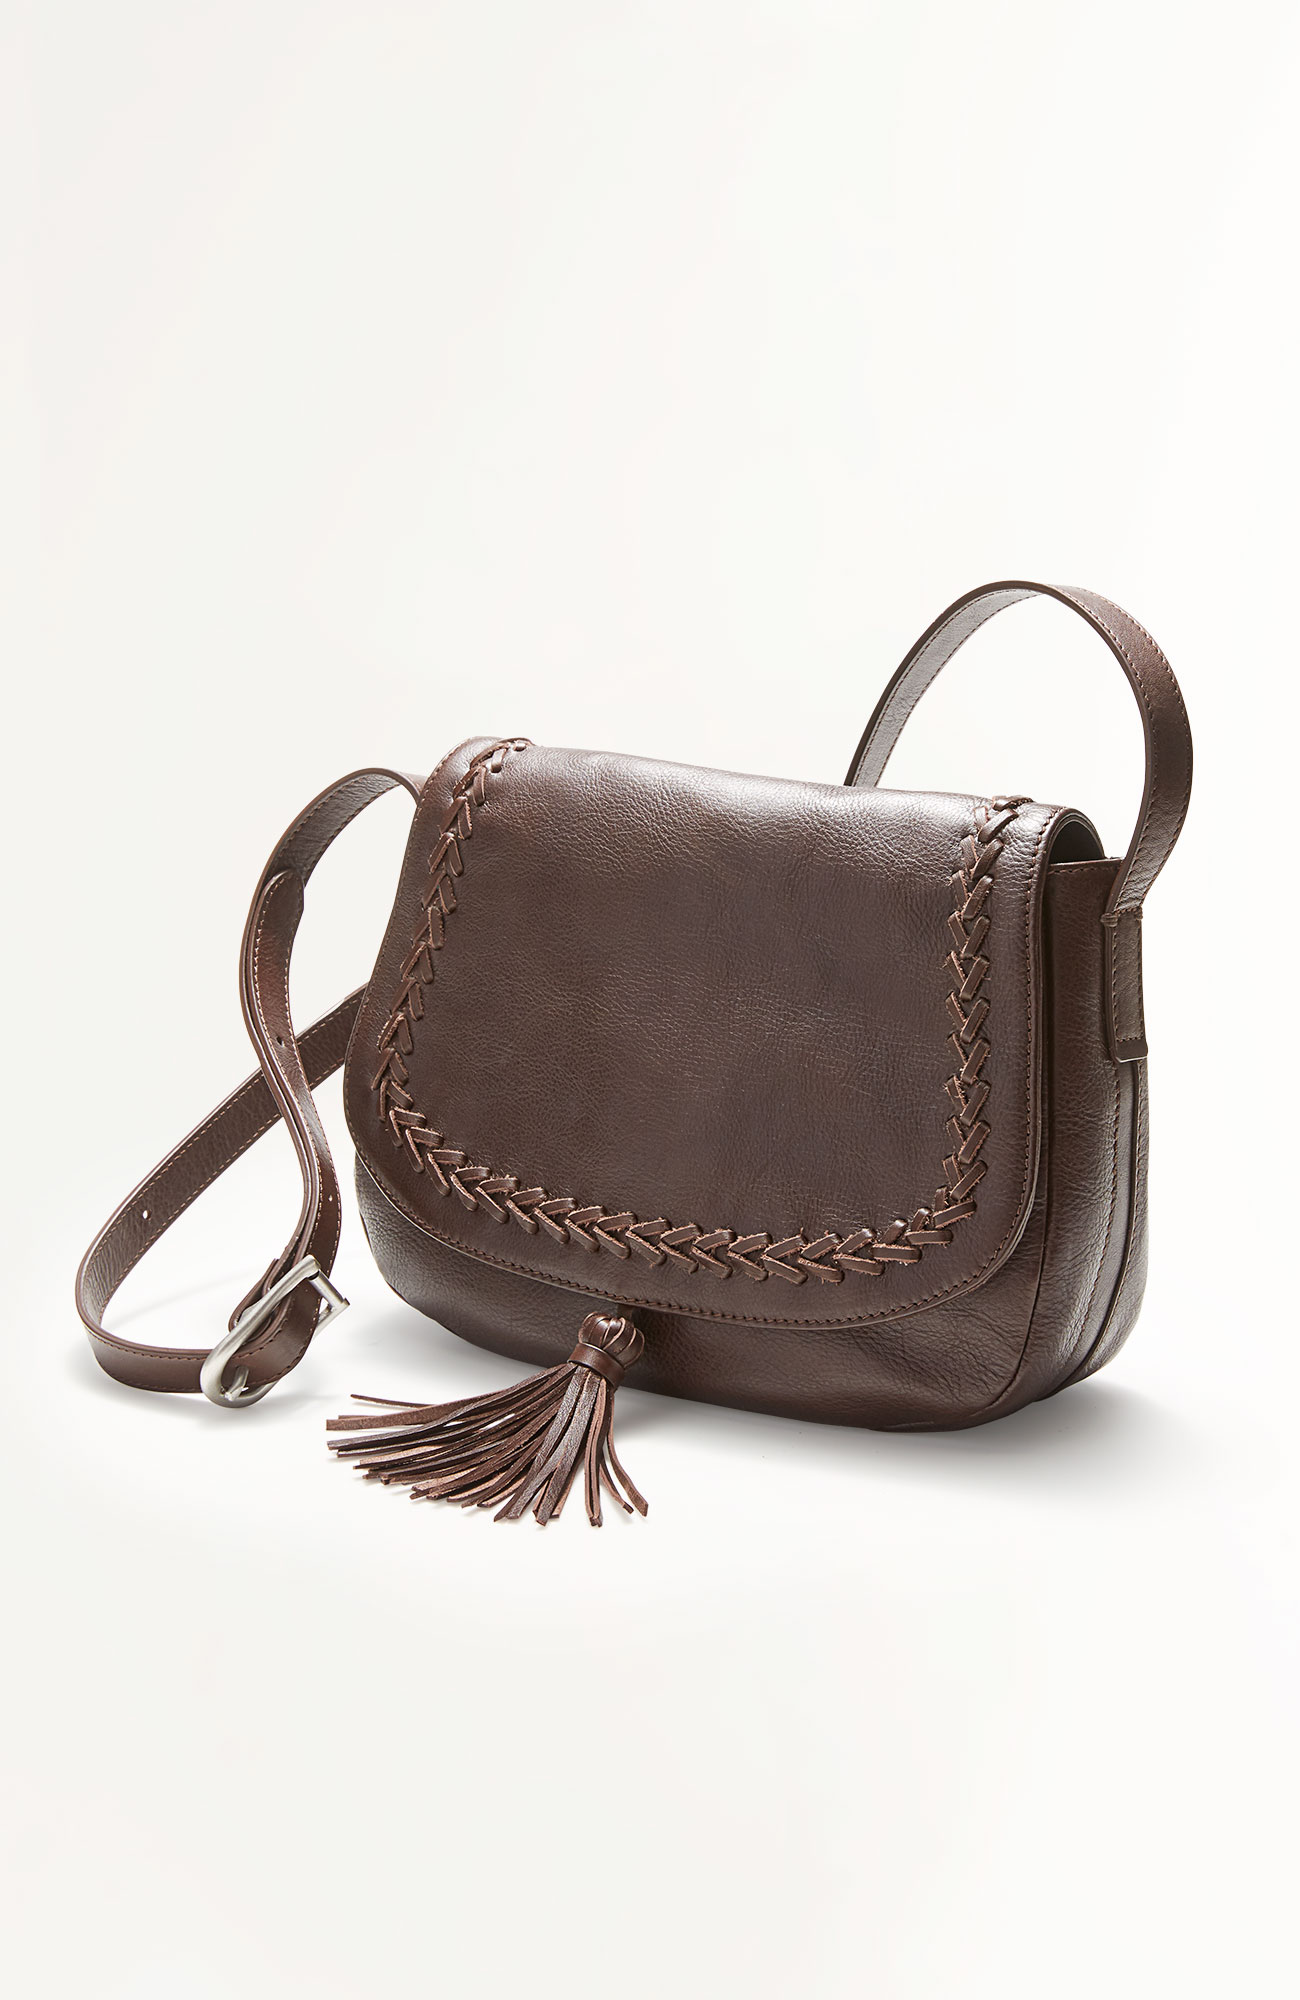 cross-body saddle bag